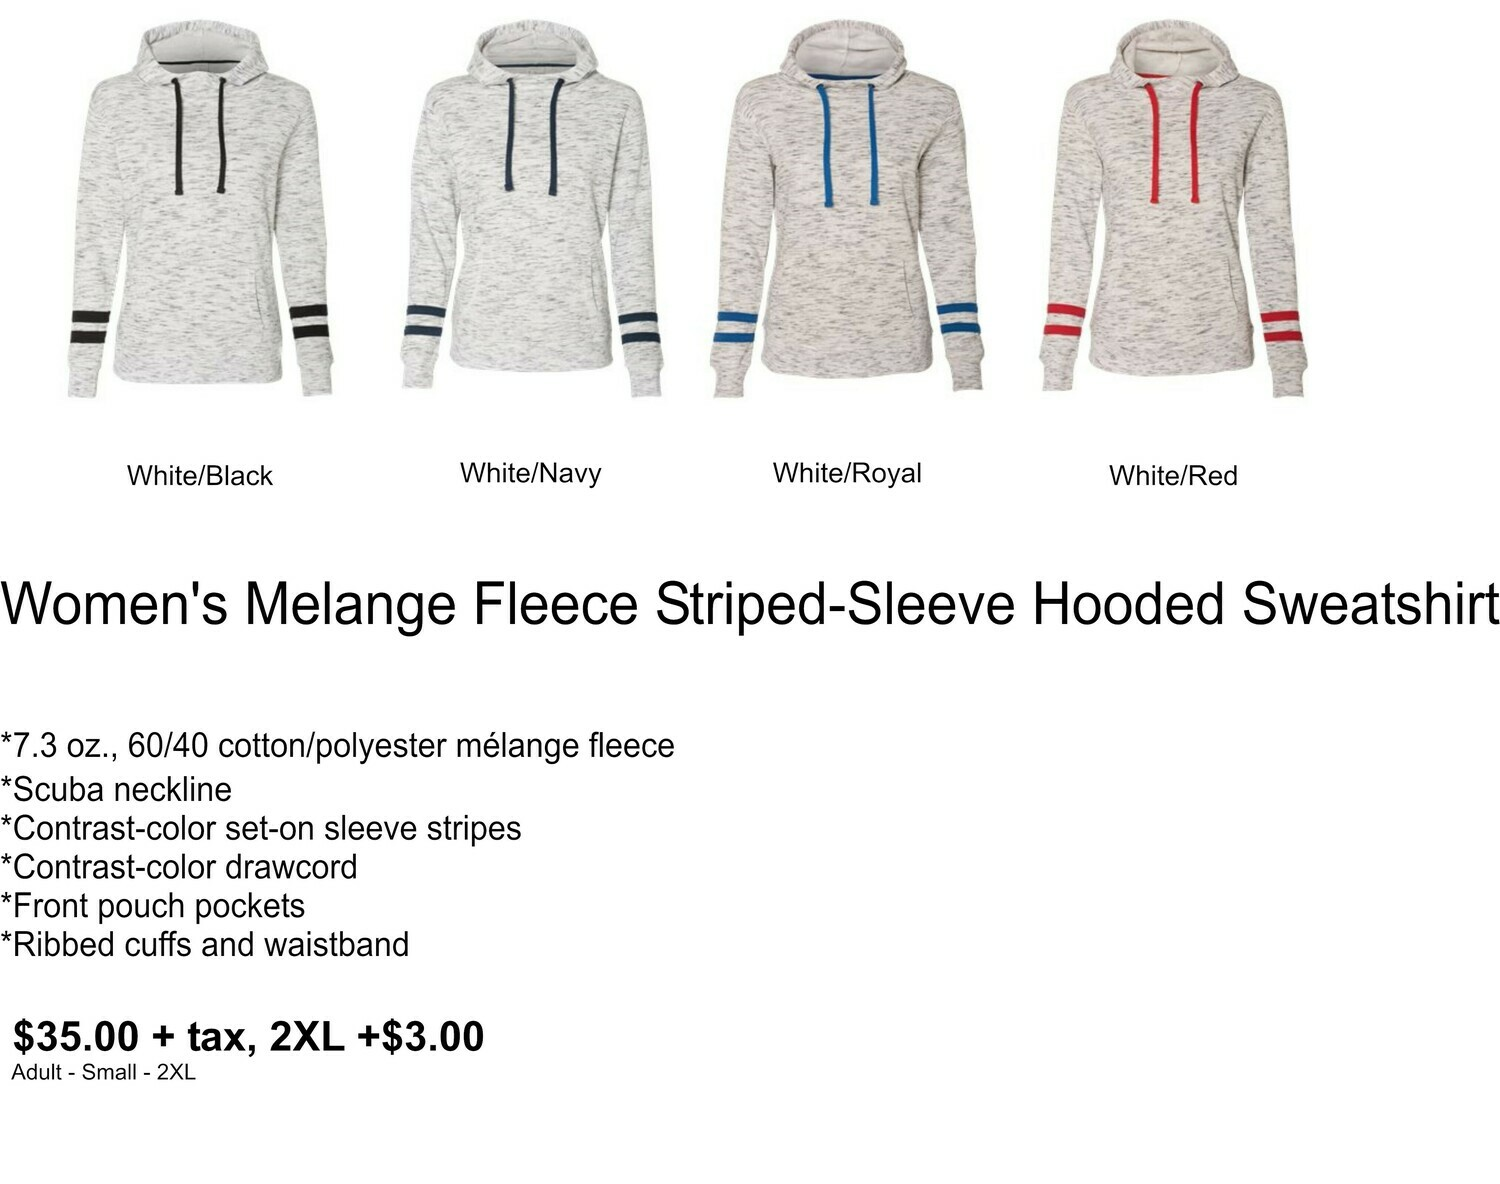 Women's Melange Fleece Striped-Sleeve Hooded Sweatshirt